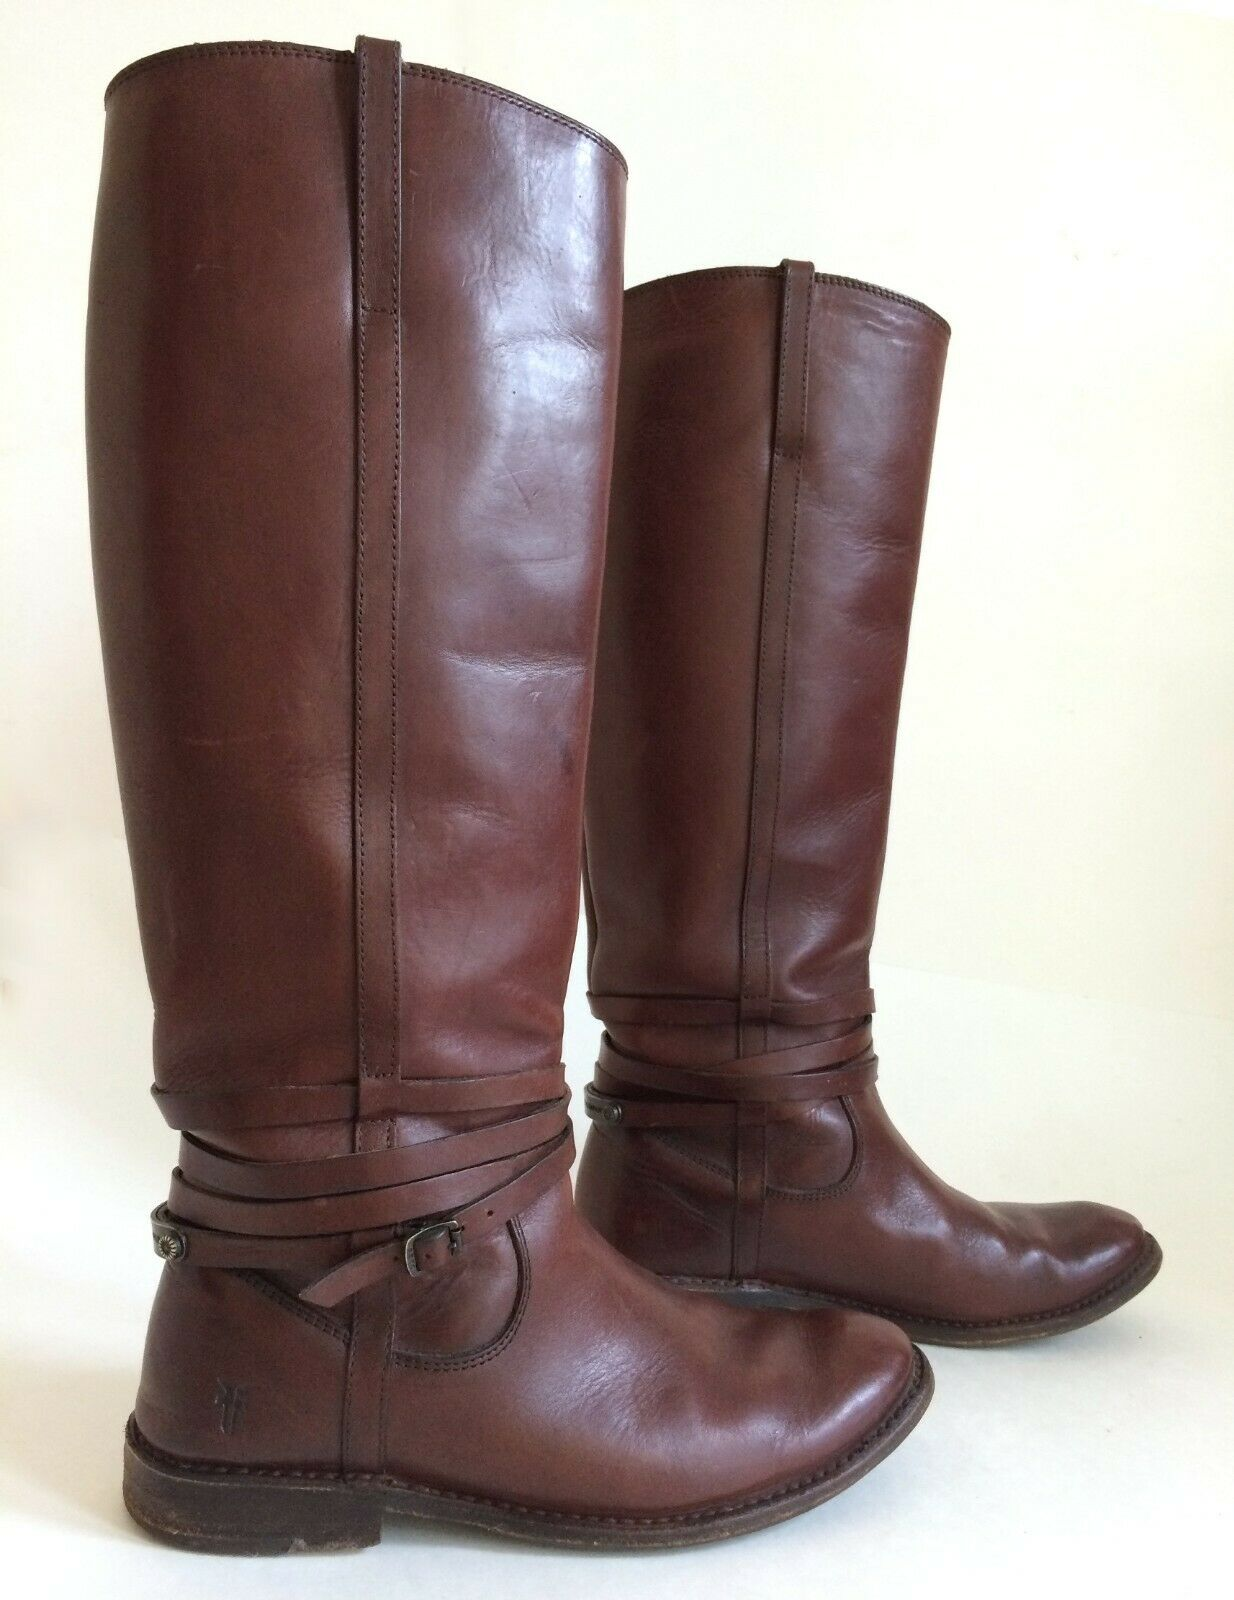 FRYE 77754 Shirley Riding Plate Brown Leather Motorcycle Tall Boots Size 6.5